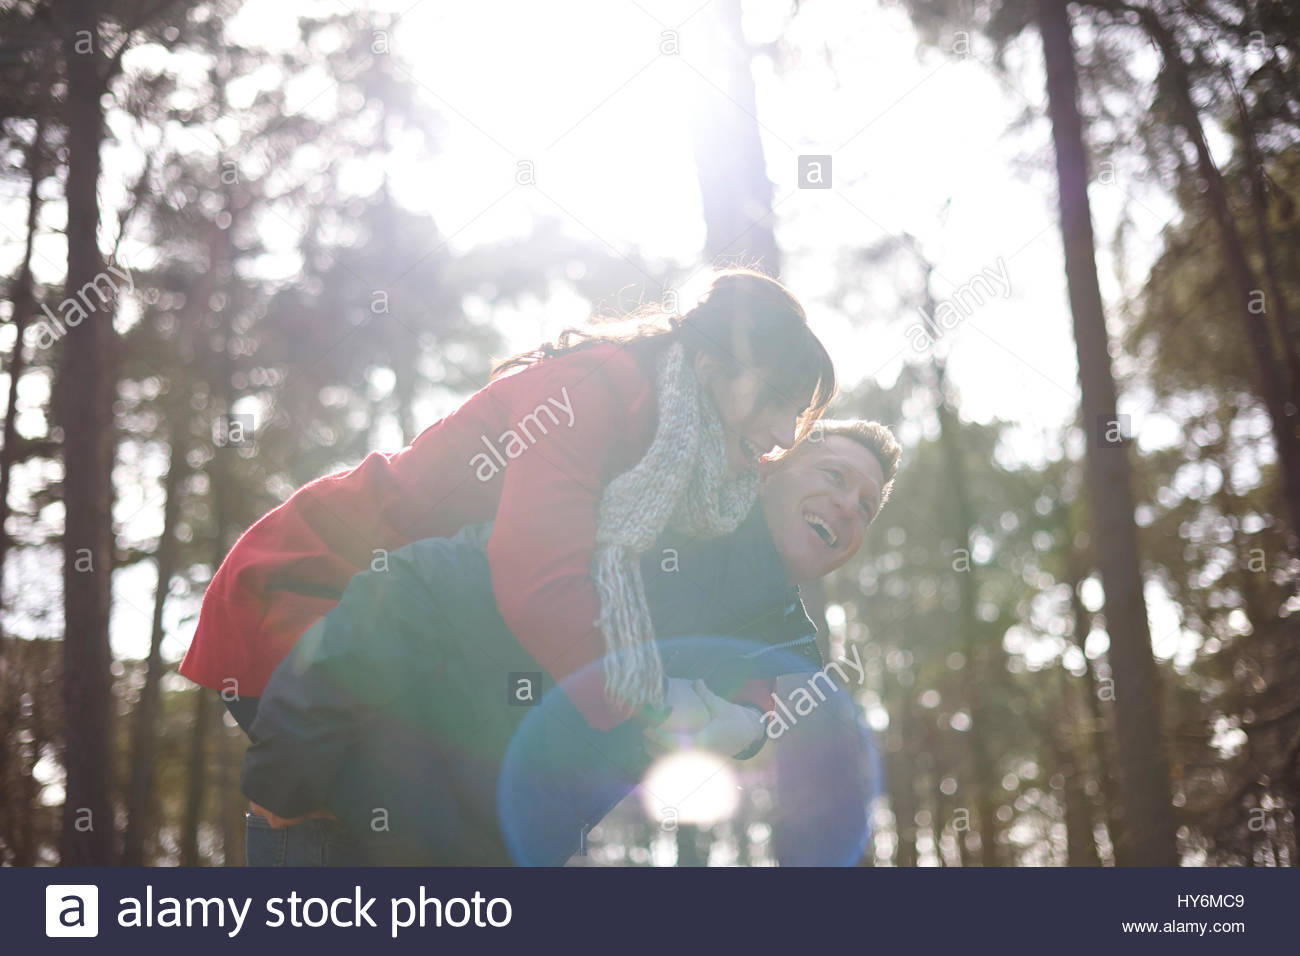 young man giving young lady a piggy back - Stock Image